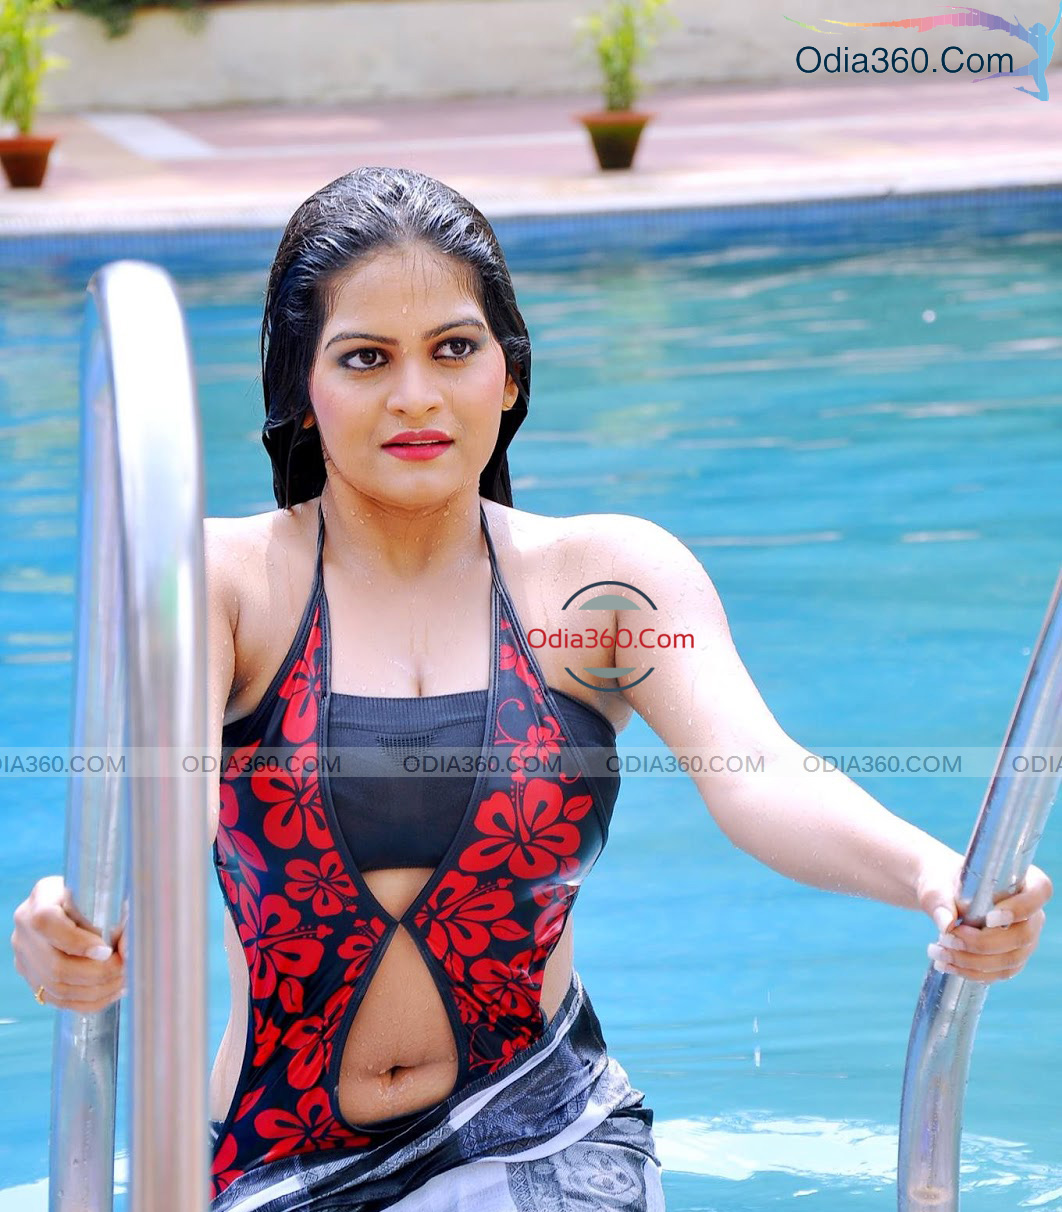 Dipika Tripathy Hot Odia Actress Real Life Photos,Images -9358